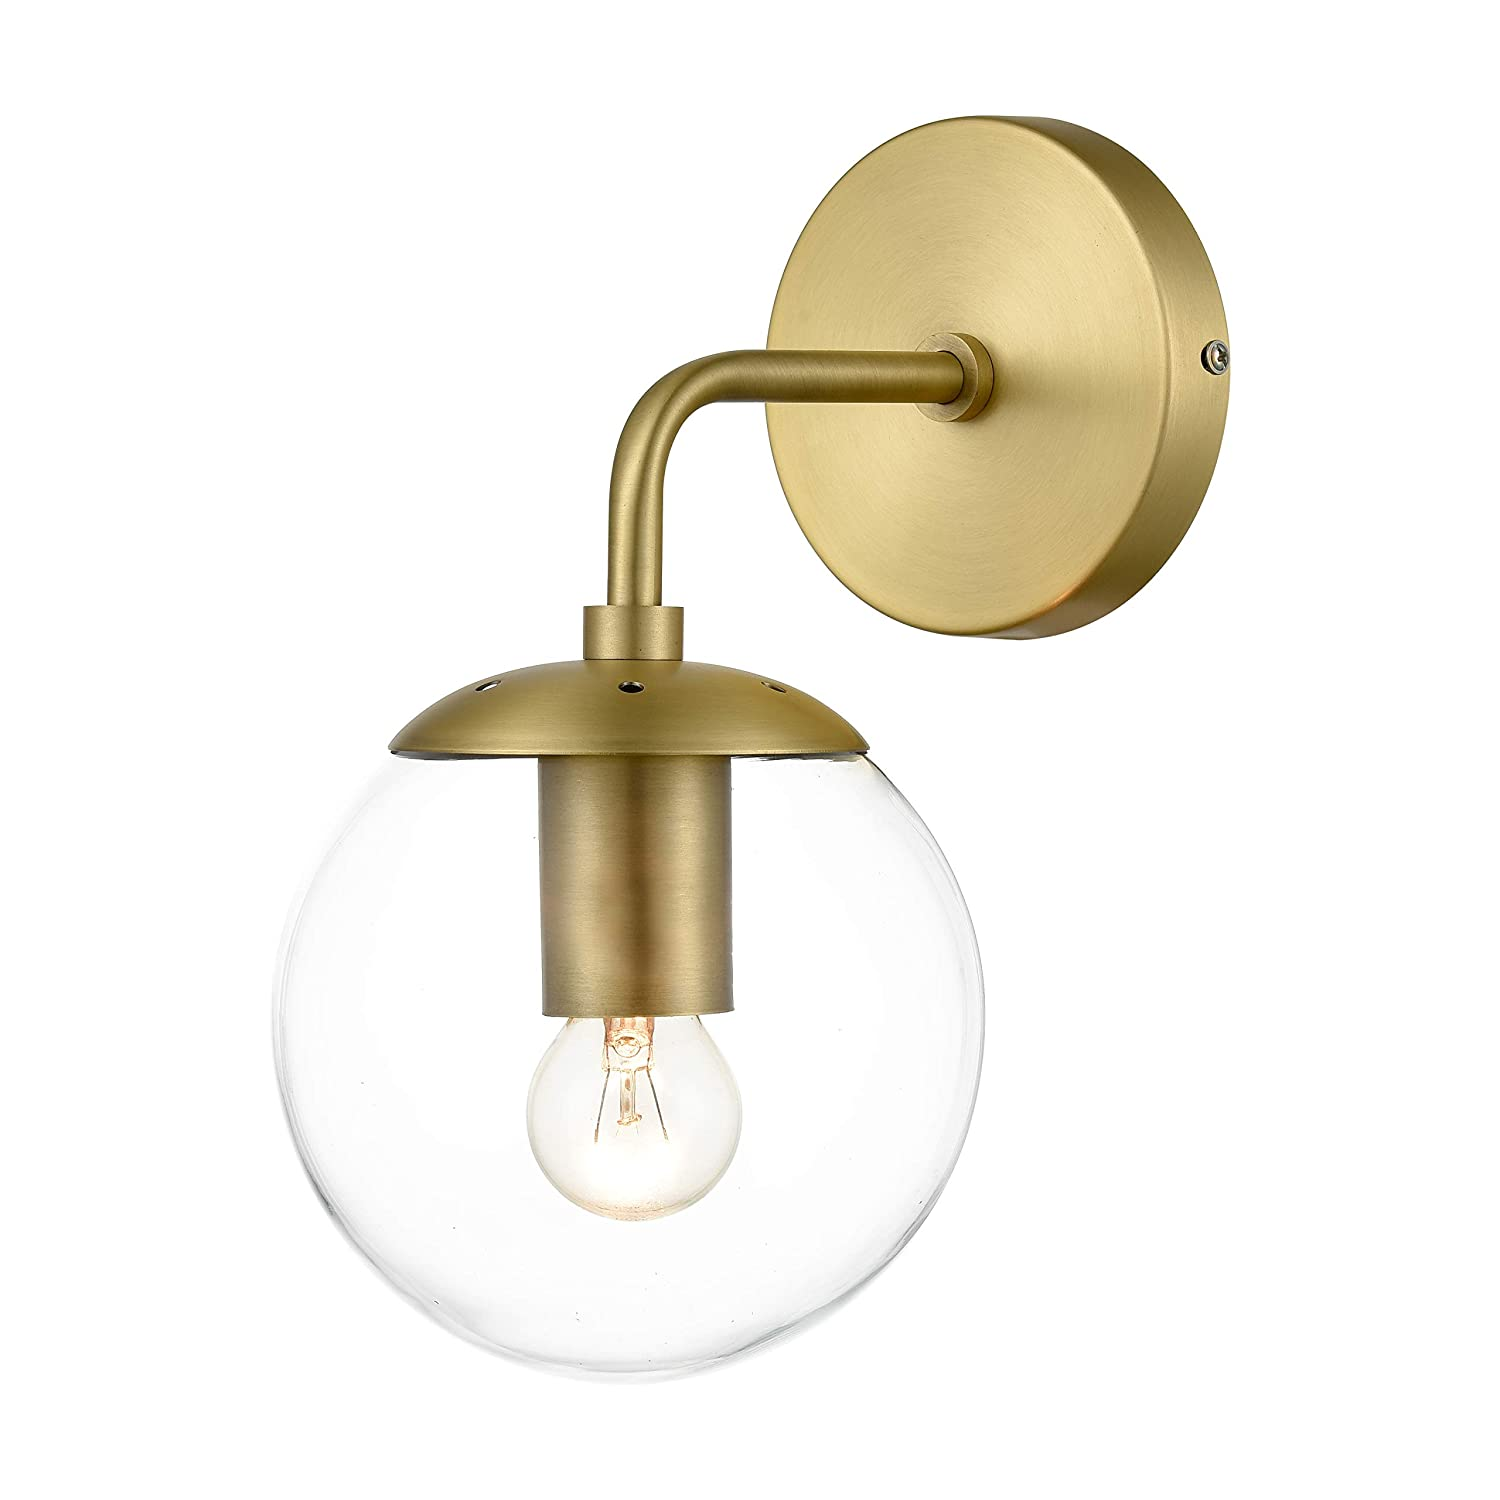 Light society ls w264 bb cl zeno brushed brass and clear glass globe wall sconce mid century modern retro vintage style